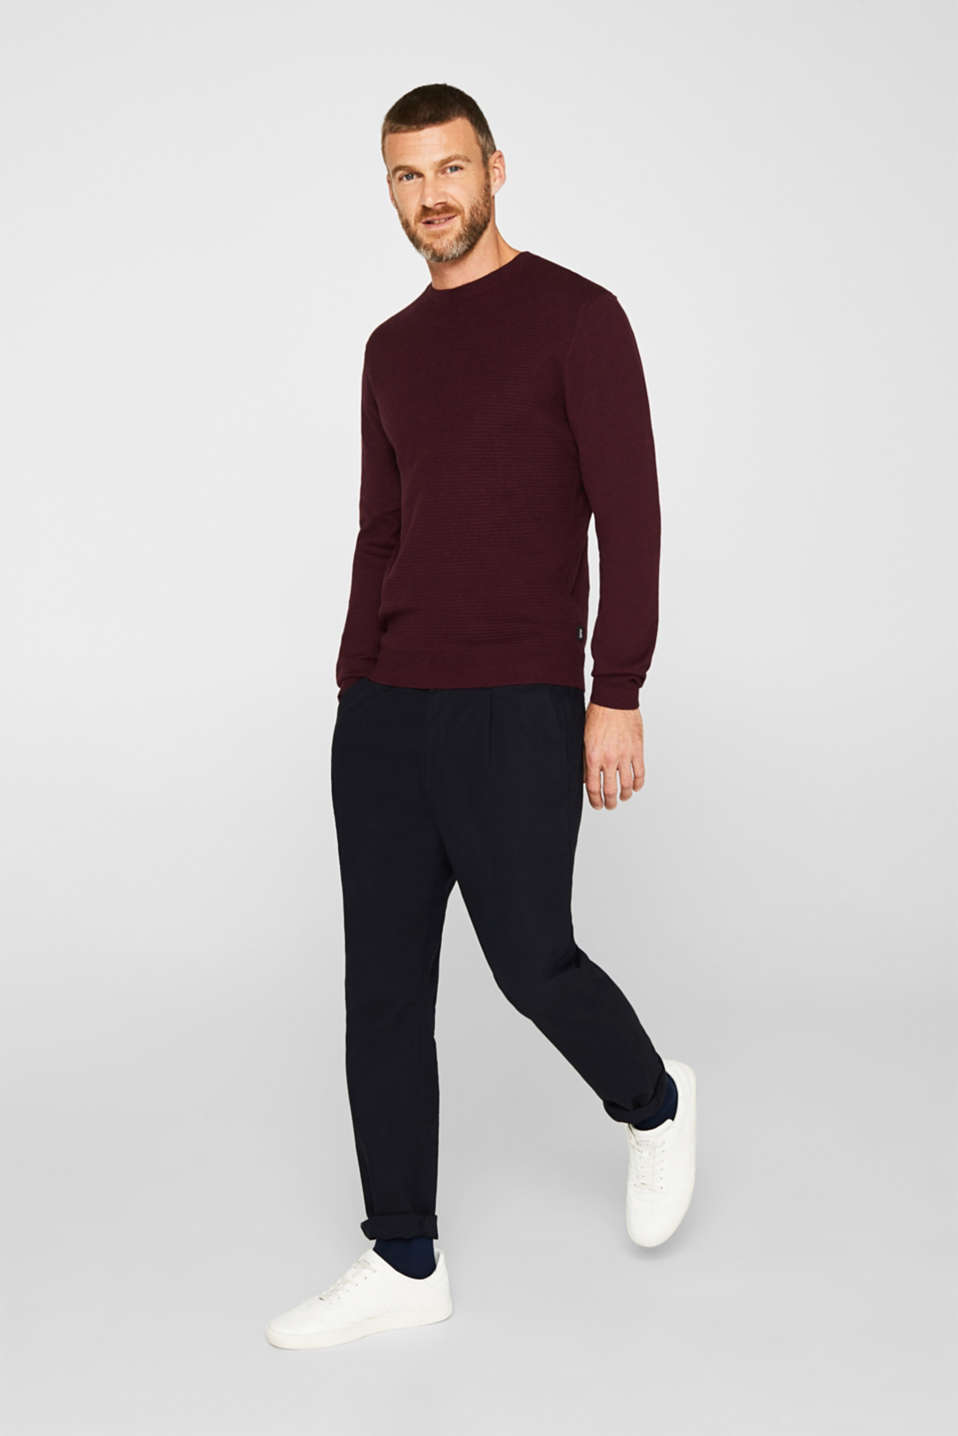 Cashmere blend: textured knit jumper, BORDEAUX RED 5, detail image number 7